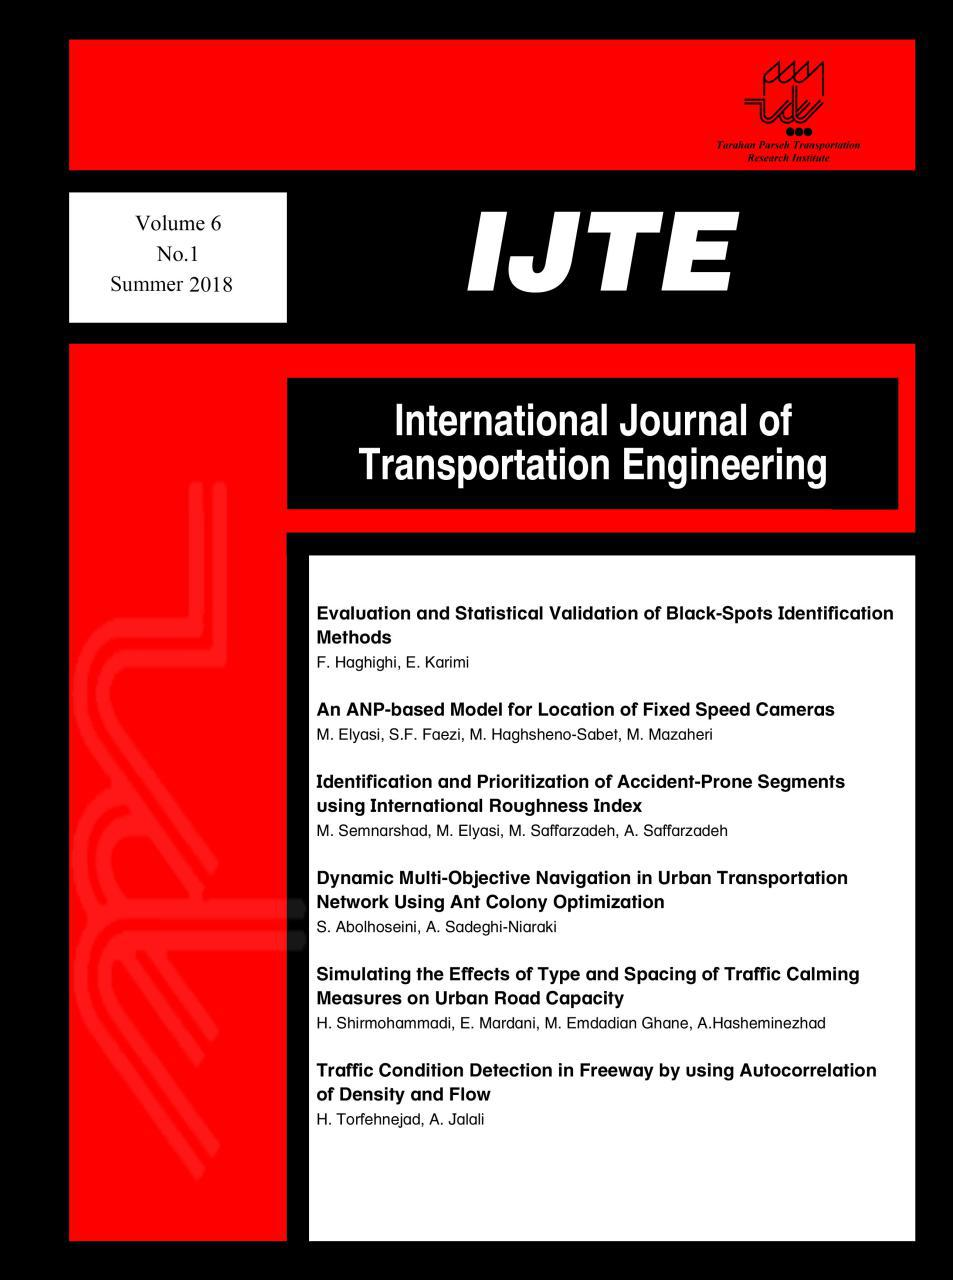 International Journal of Transportation Engineering